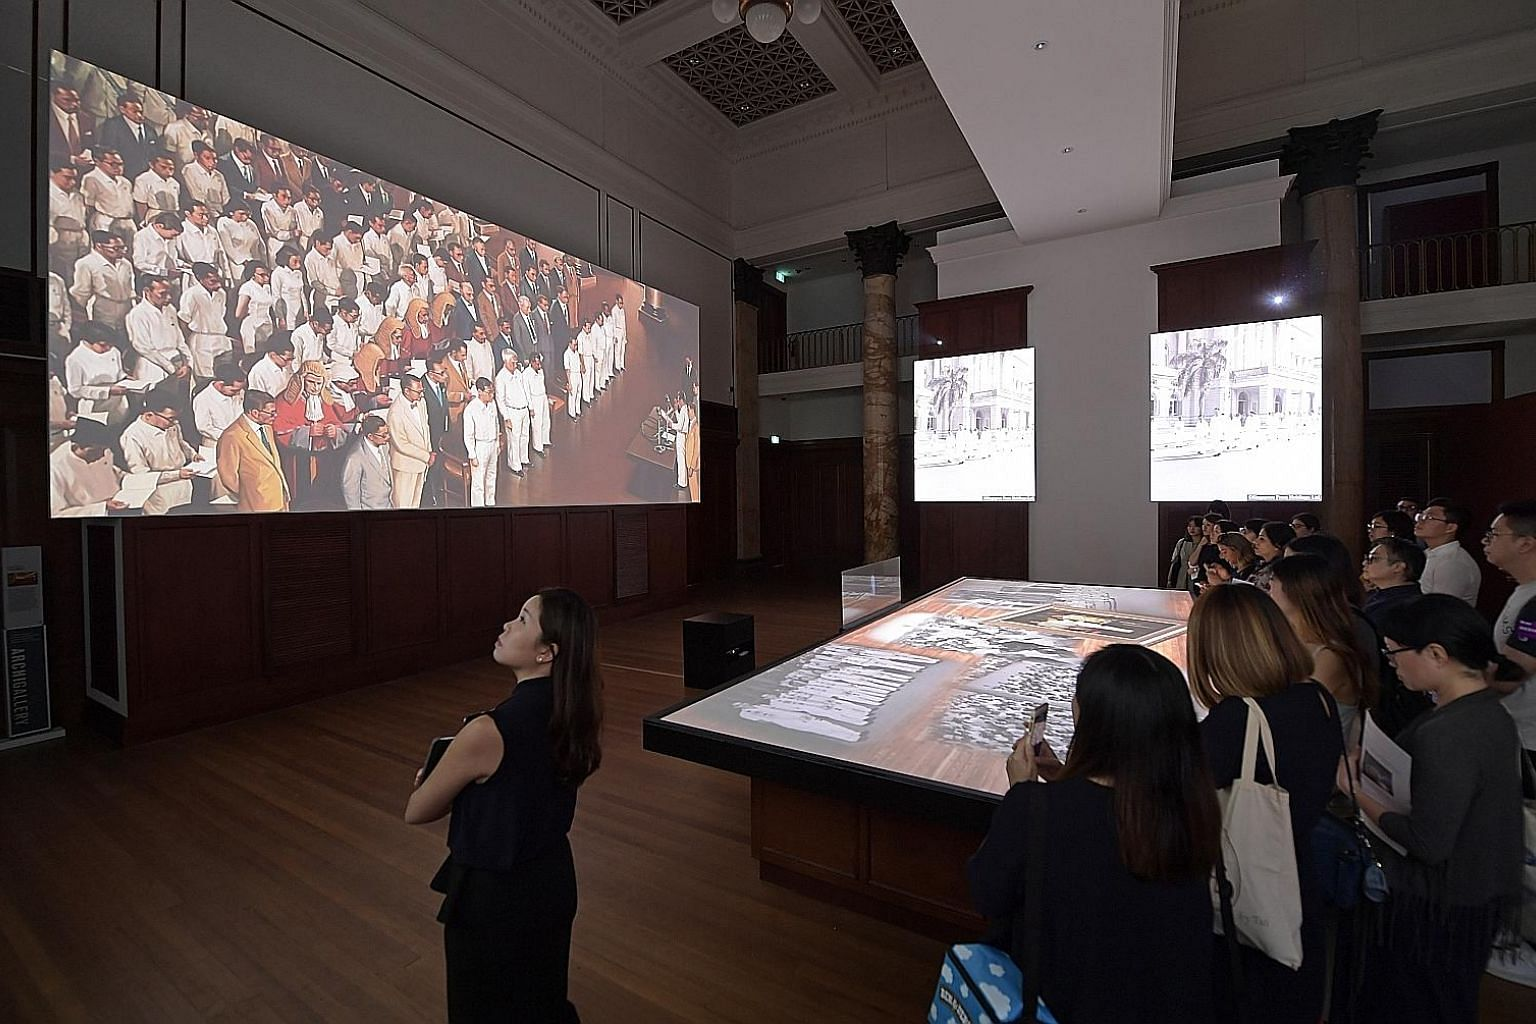 A multimedia show introduces visitors to the history of the old City Hall, which has been the backdrop to key moments in Singapore's history.